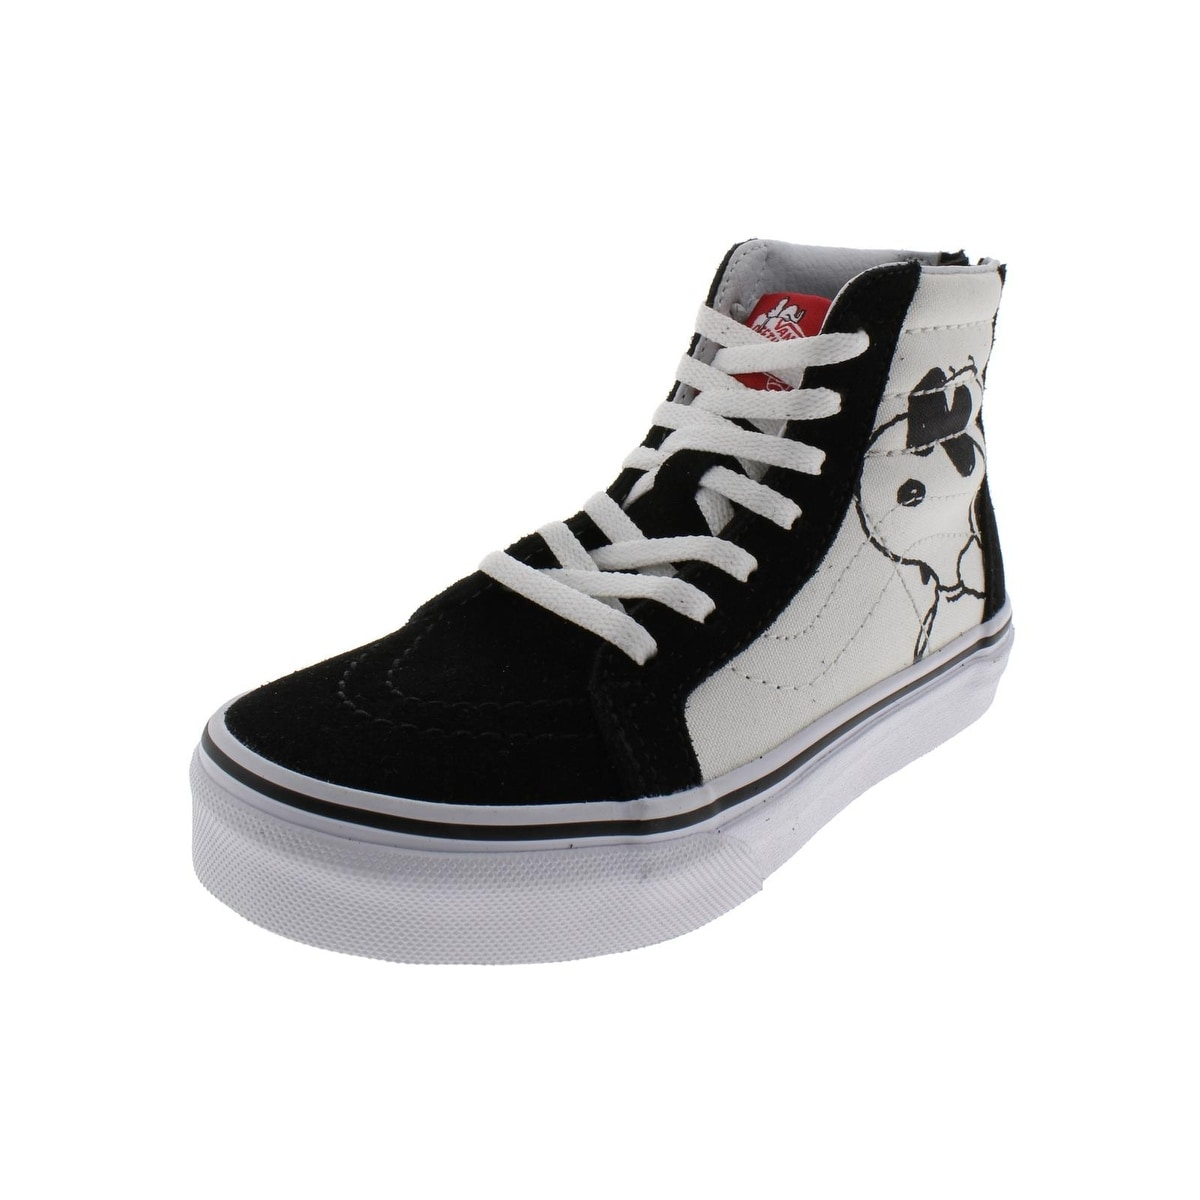 2eca57f0d4642b Vans Boys  Shoes